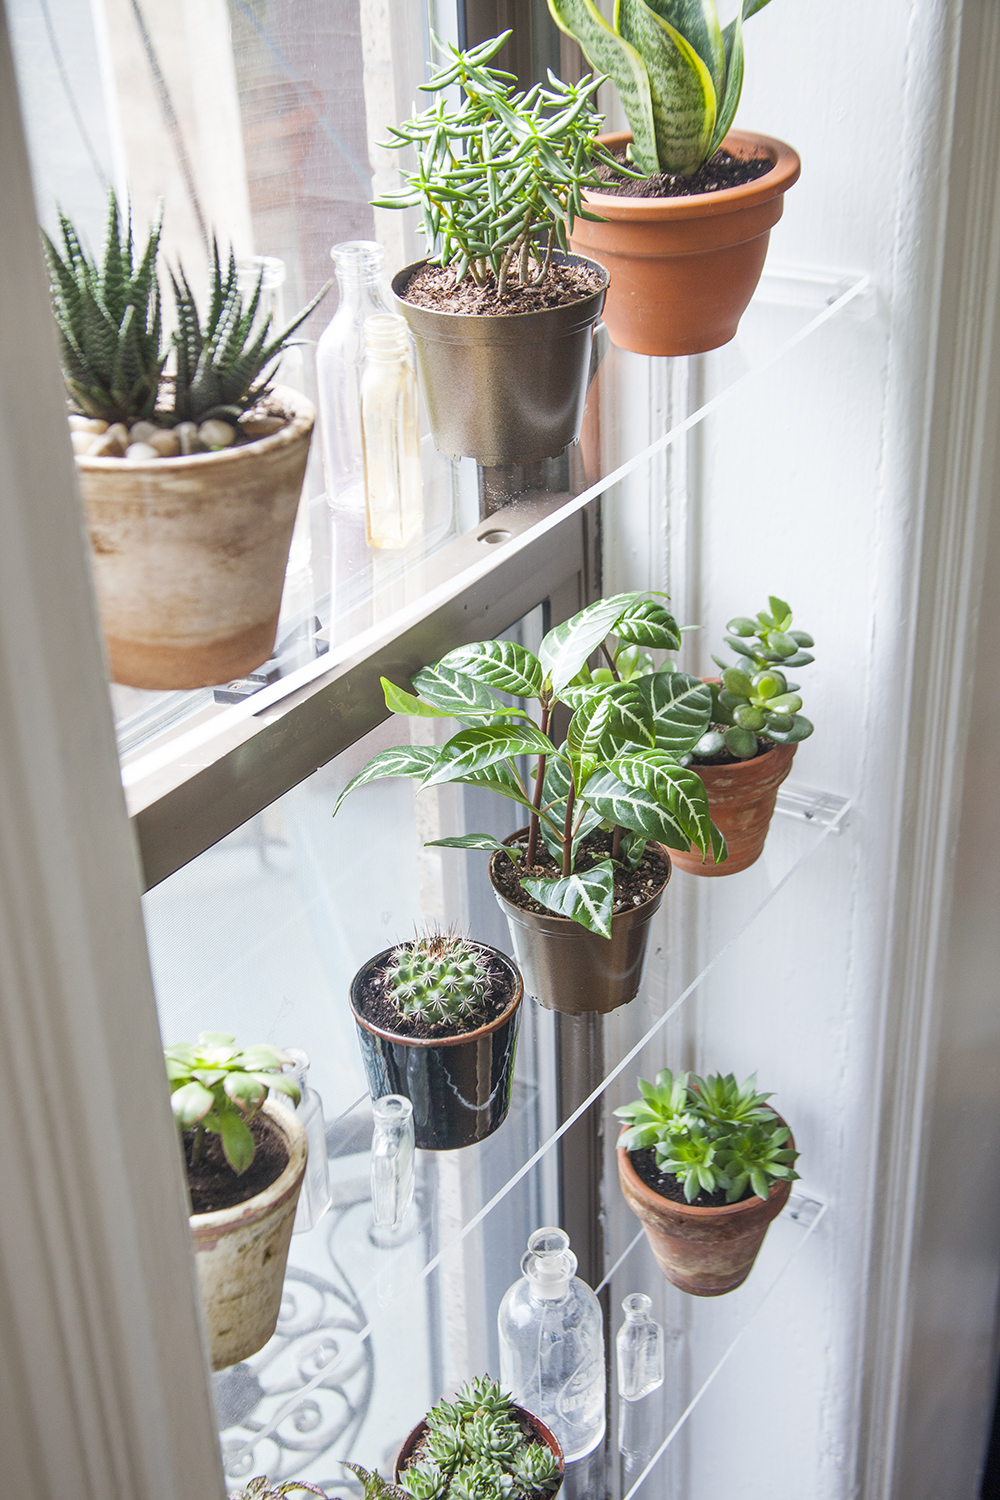 Indoor Garden Ideas - DIY Plant Holders | Apartment Therapy on home page ideas, home protection ideas, home pool ideas, home landscape ideas, home flower ideas, home technology ideas, home construction ideas, home lawn ideas, home rock ideas, home color ideas, home shop ideas, home park ideas, home project ideas, home summer ideas, home lighting ideas, home wall ideas, home fence ideas, home business ideas, home design ideas, home greenhouse ideas,